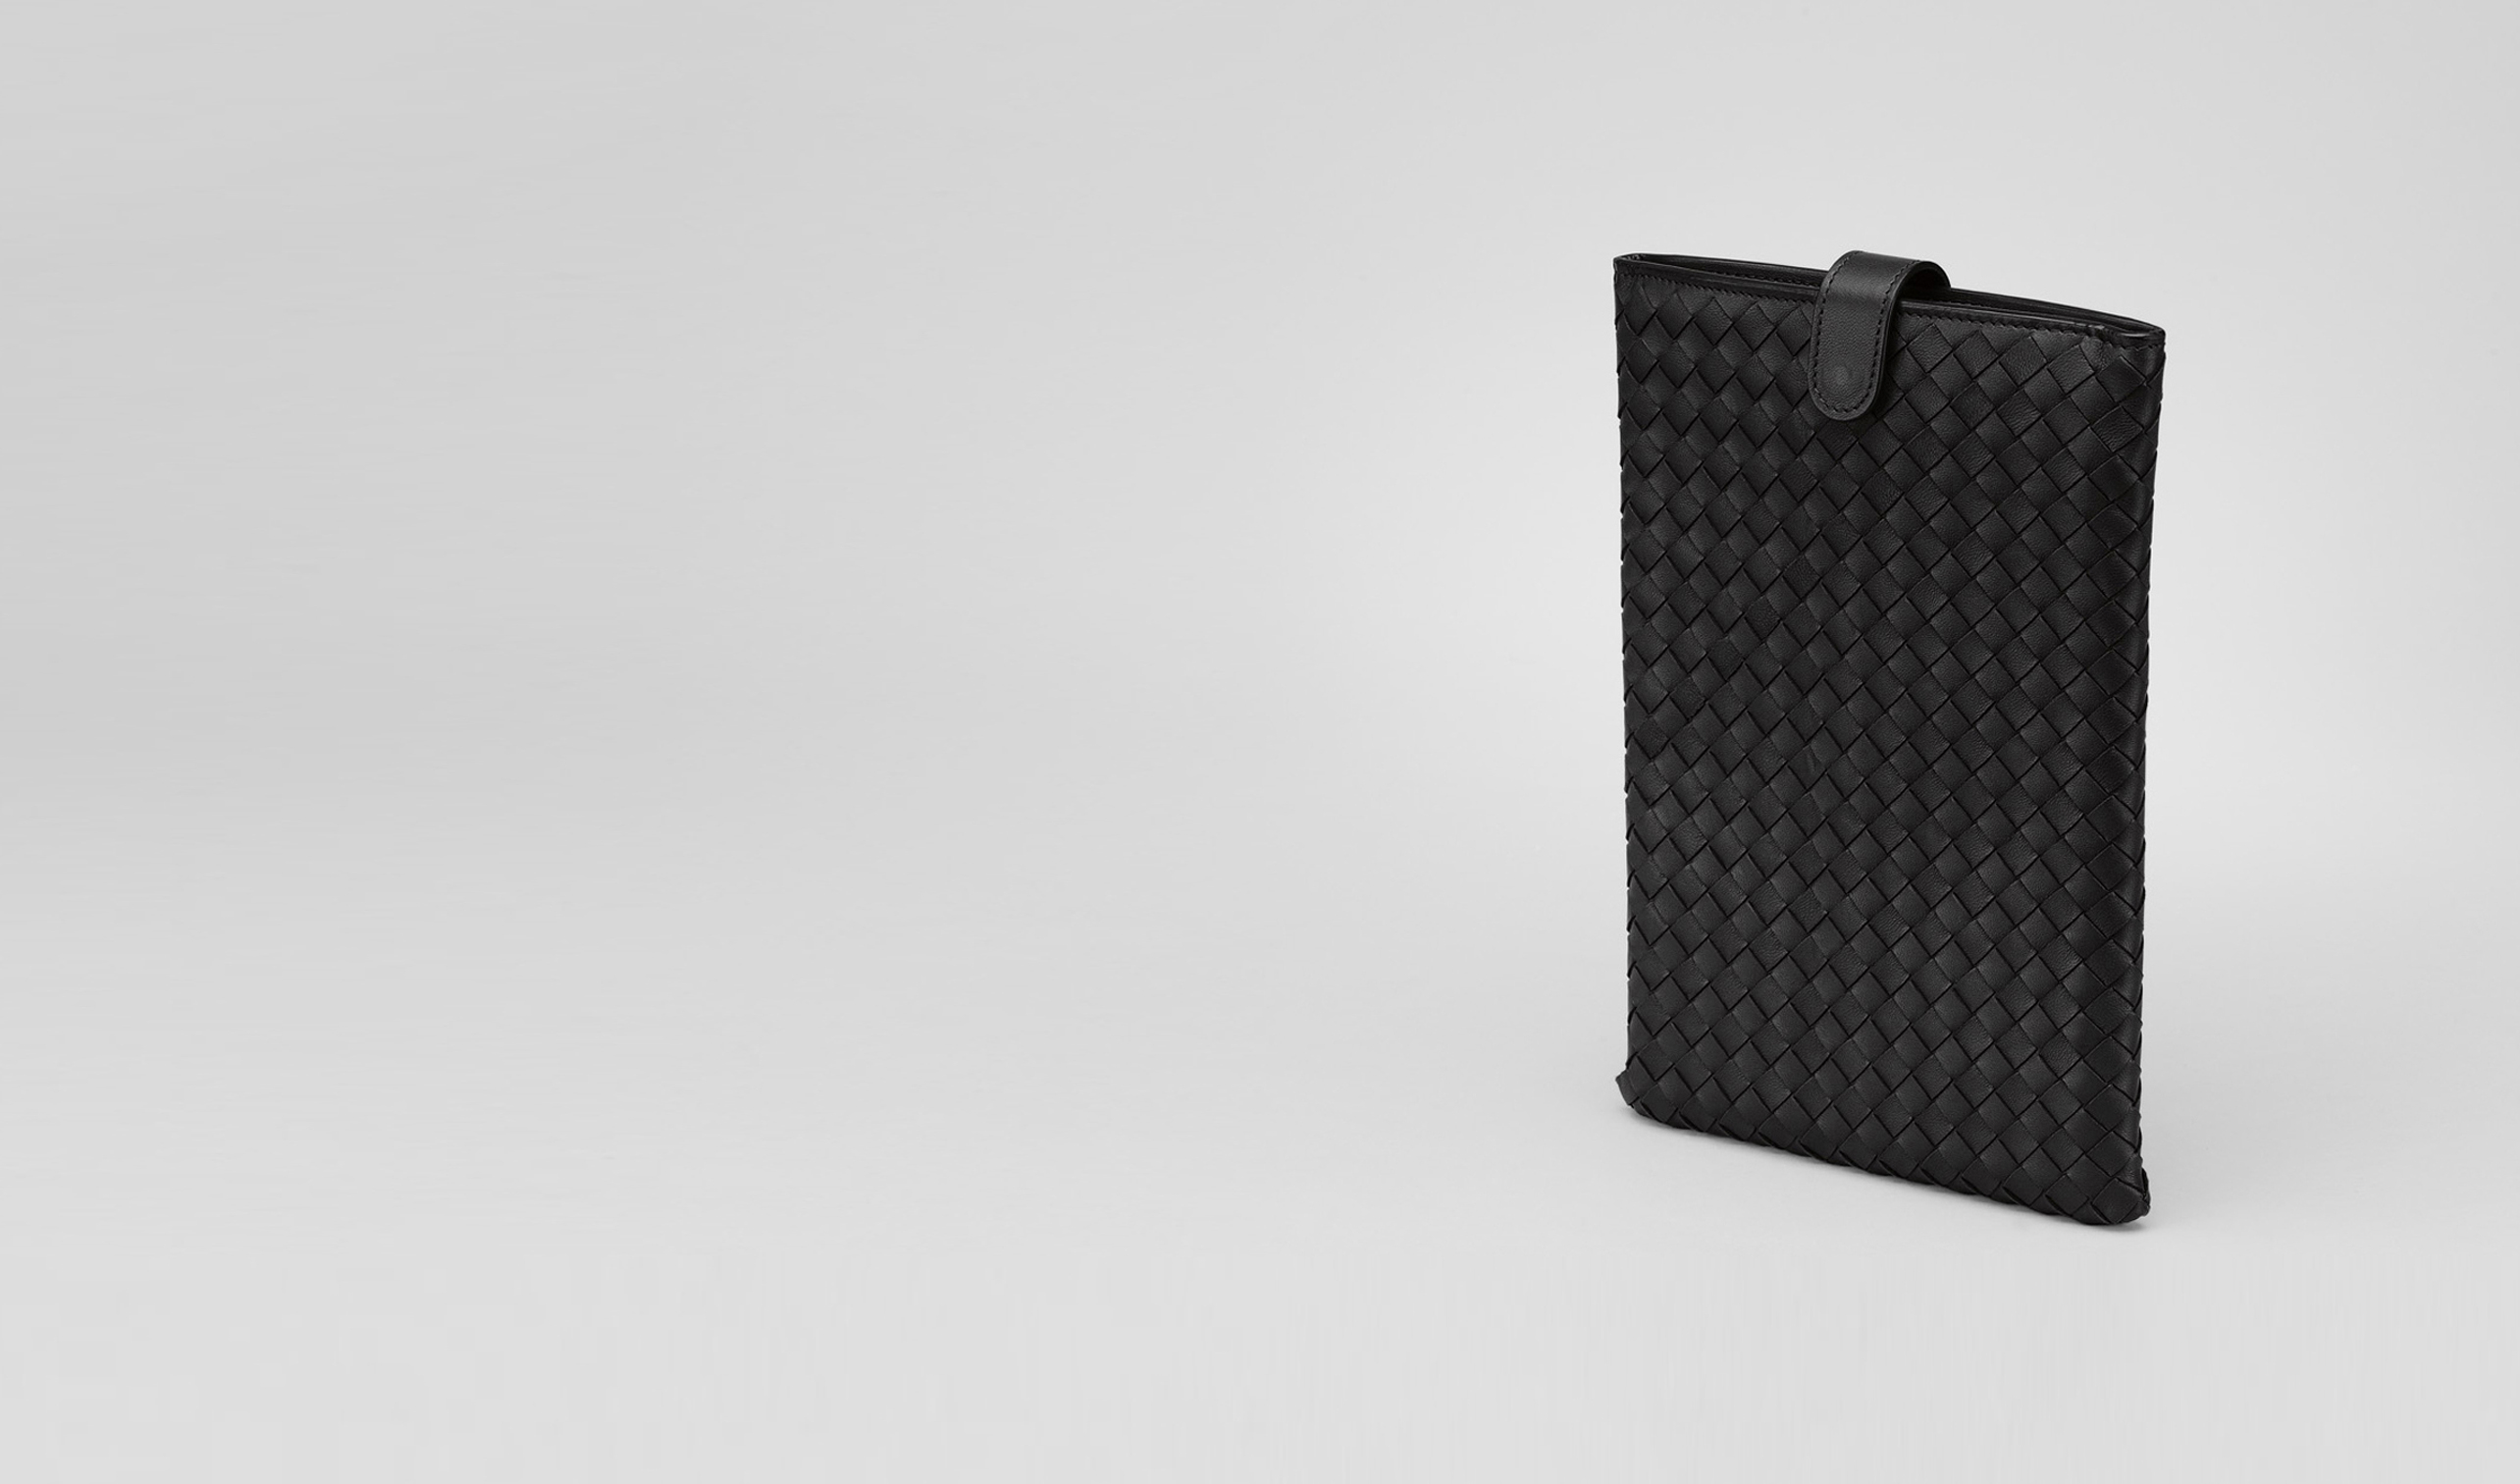 BOTTEGA VENETA Other Leather Accessory E Nero Intrecciato Nappa Mini Ipad Case pl